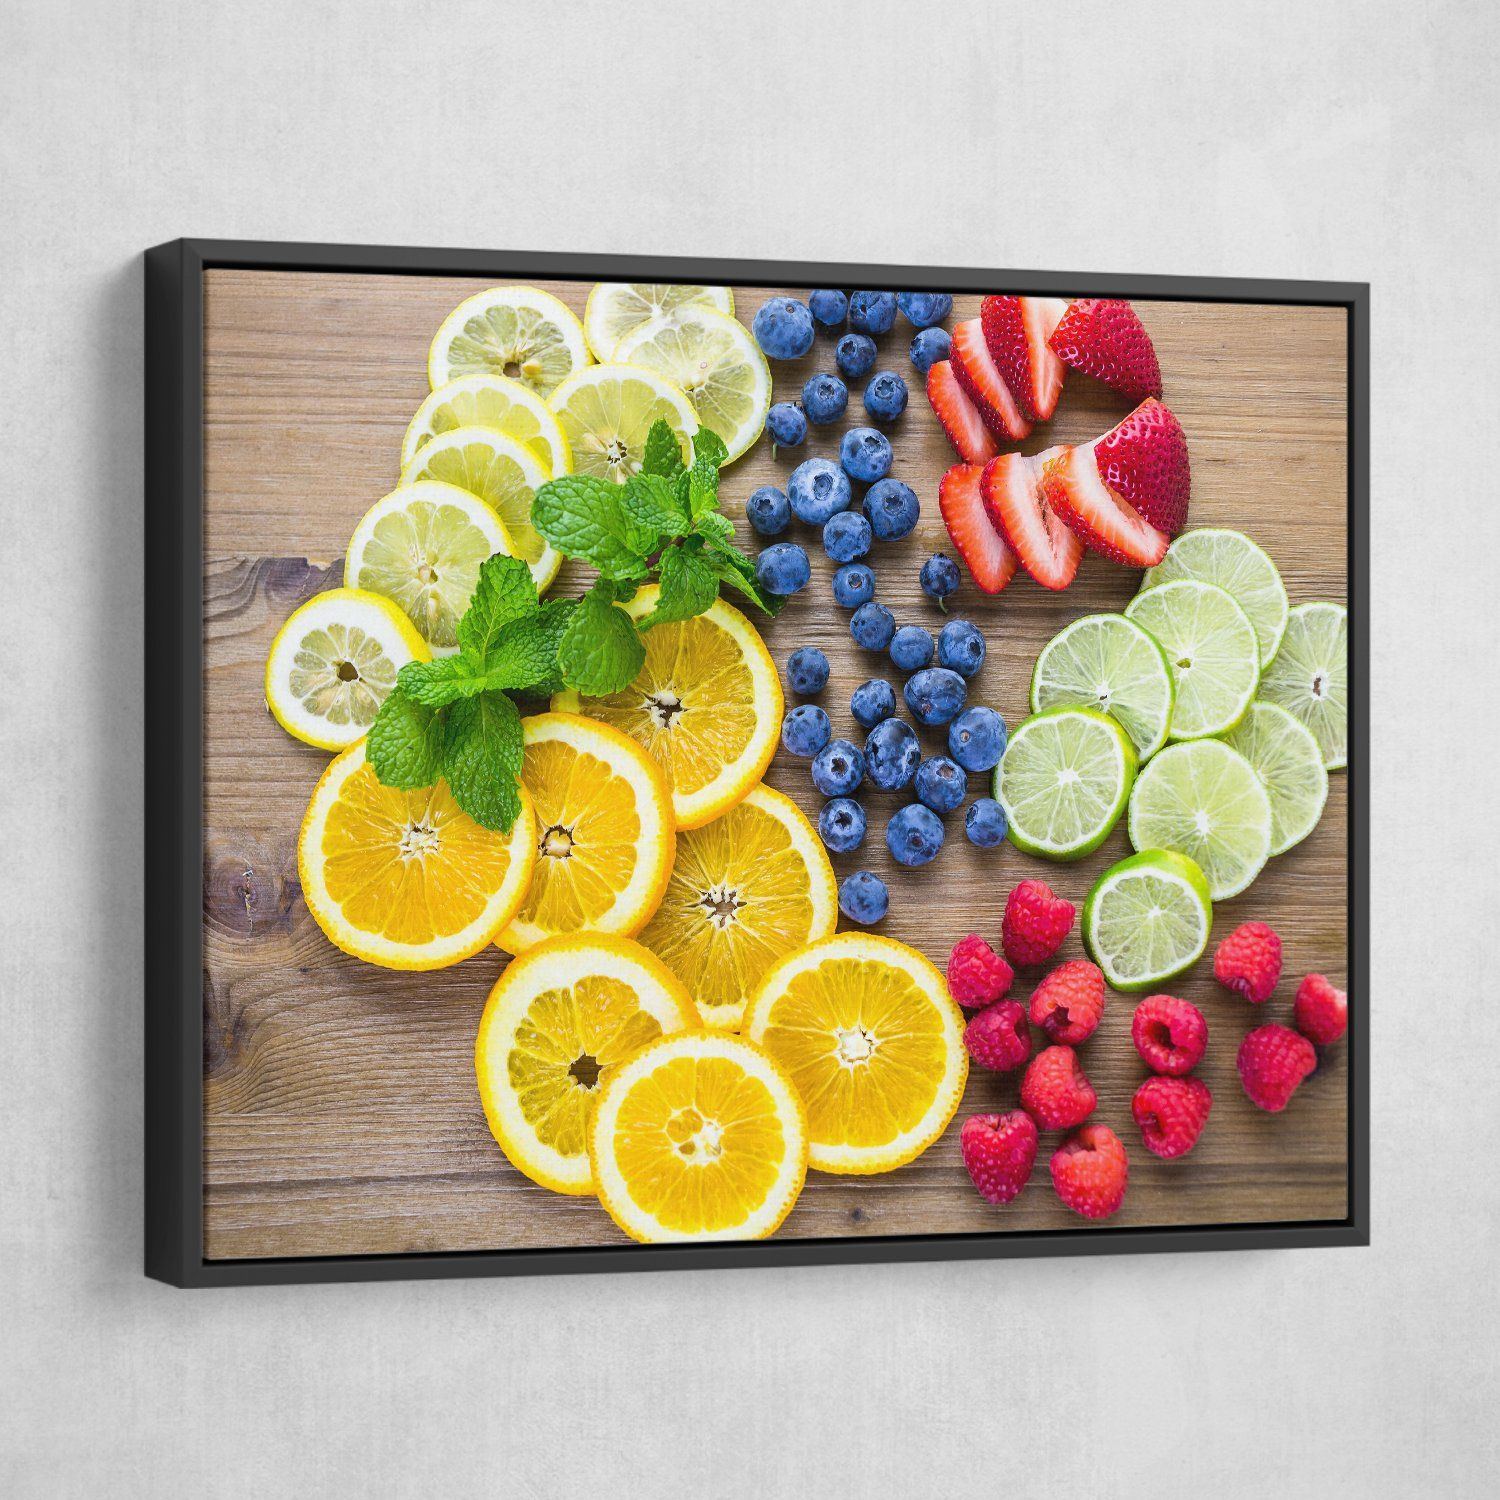 Sliced Fruits wall art black frame